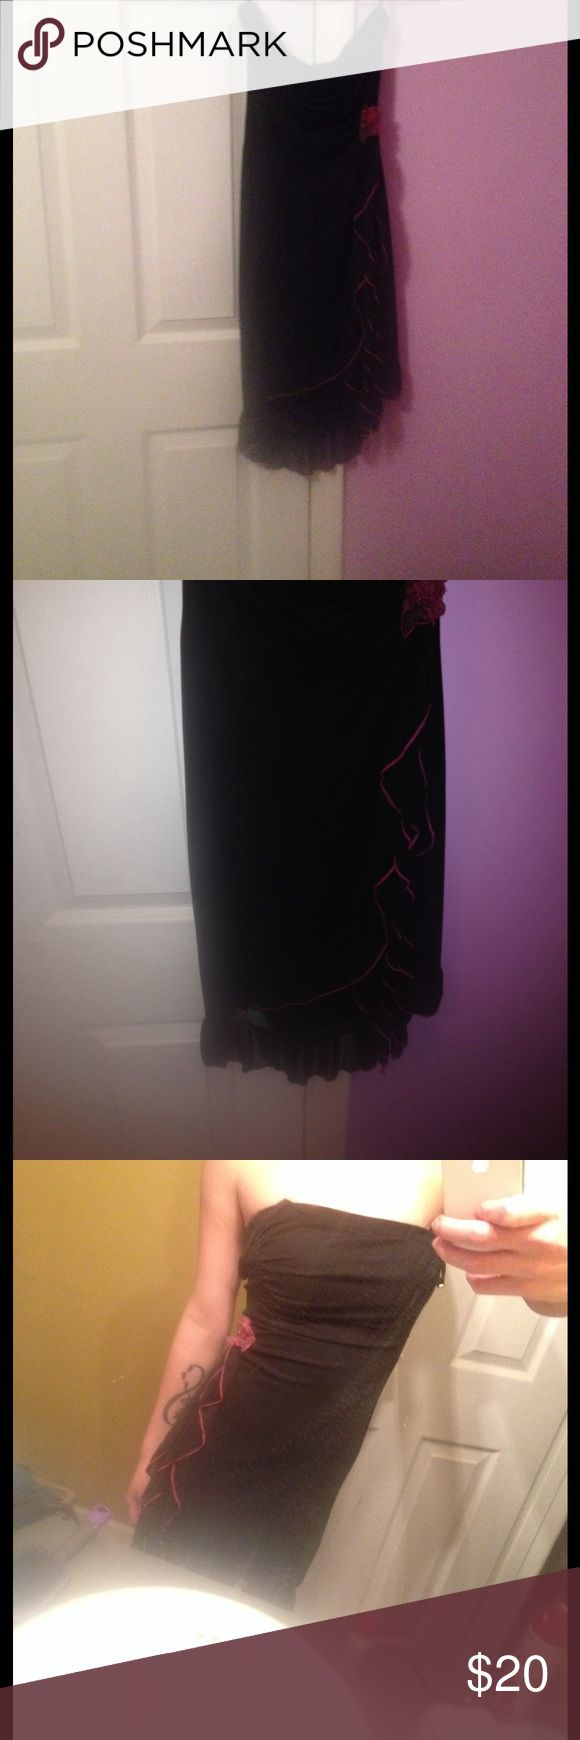 Strapless little black dress.!😍 This dress is strapless it has a pinkish colored rose on the side with a fringe type seam down the side. It's great for the summer or even a nice dinner date dress! Kinda reminds me of a Tango dress lol! Dresses Strapless